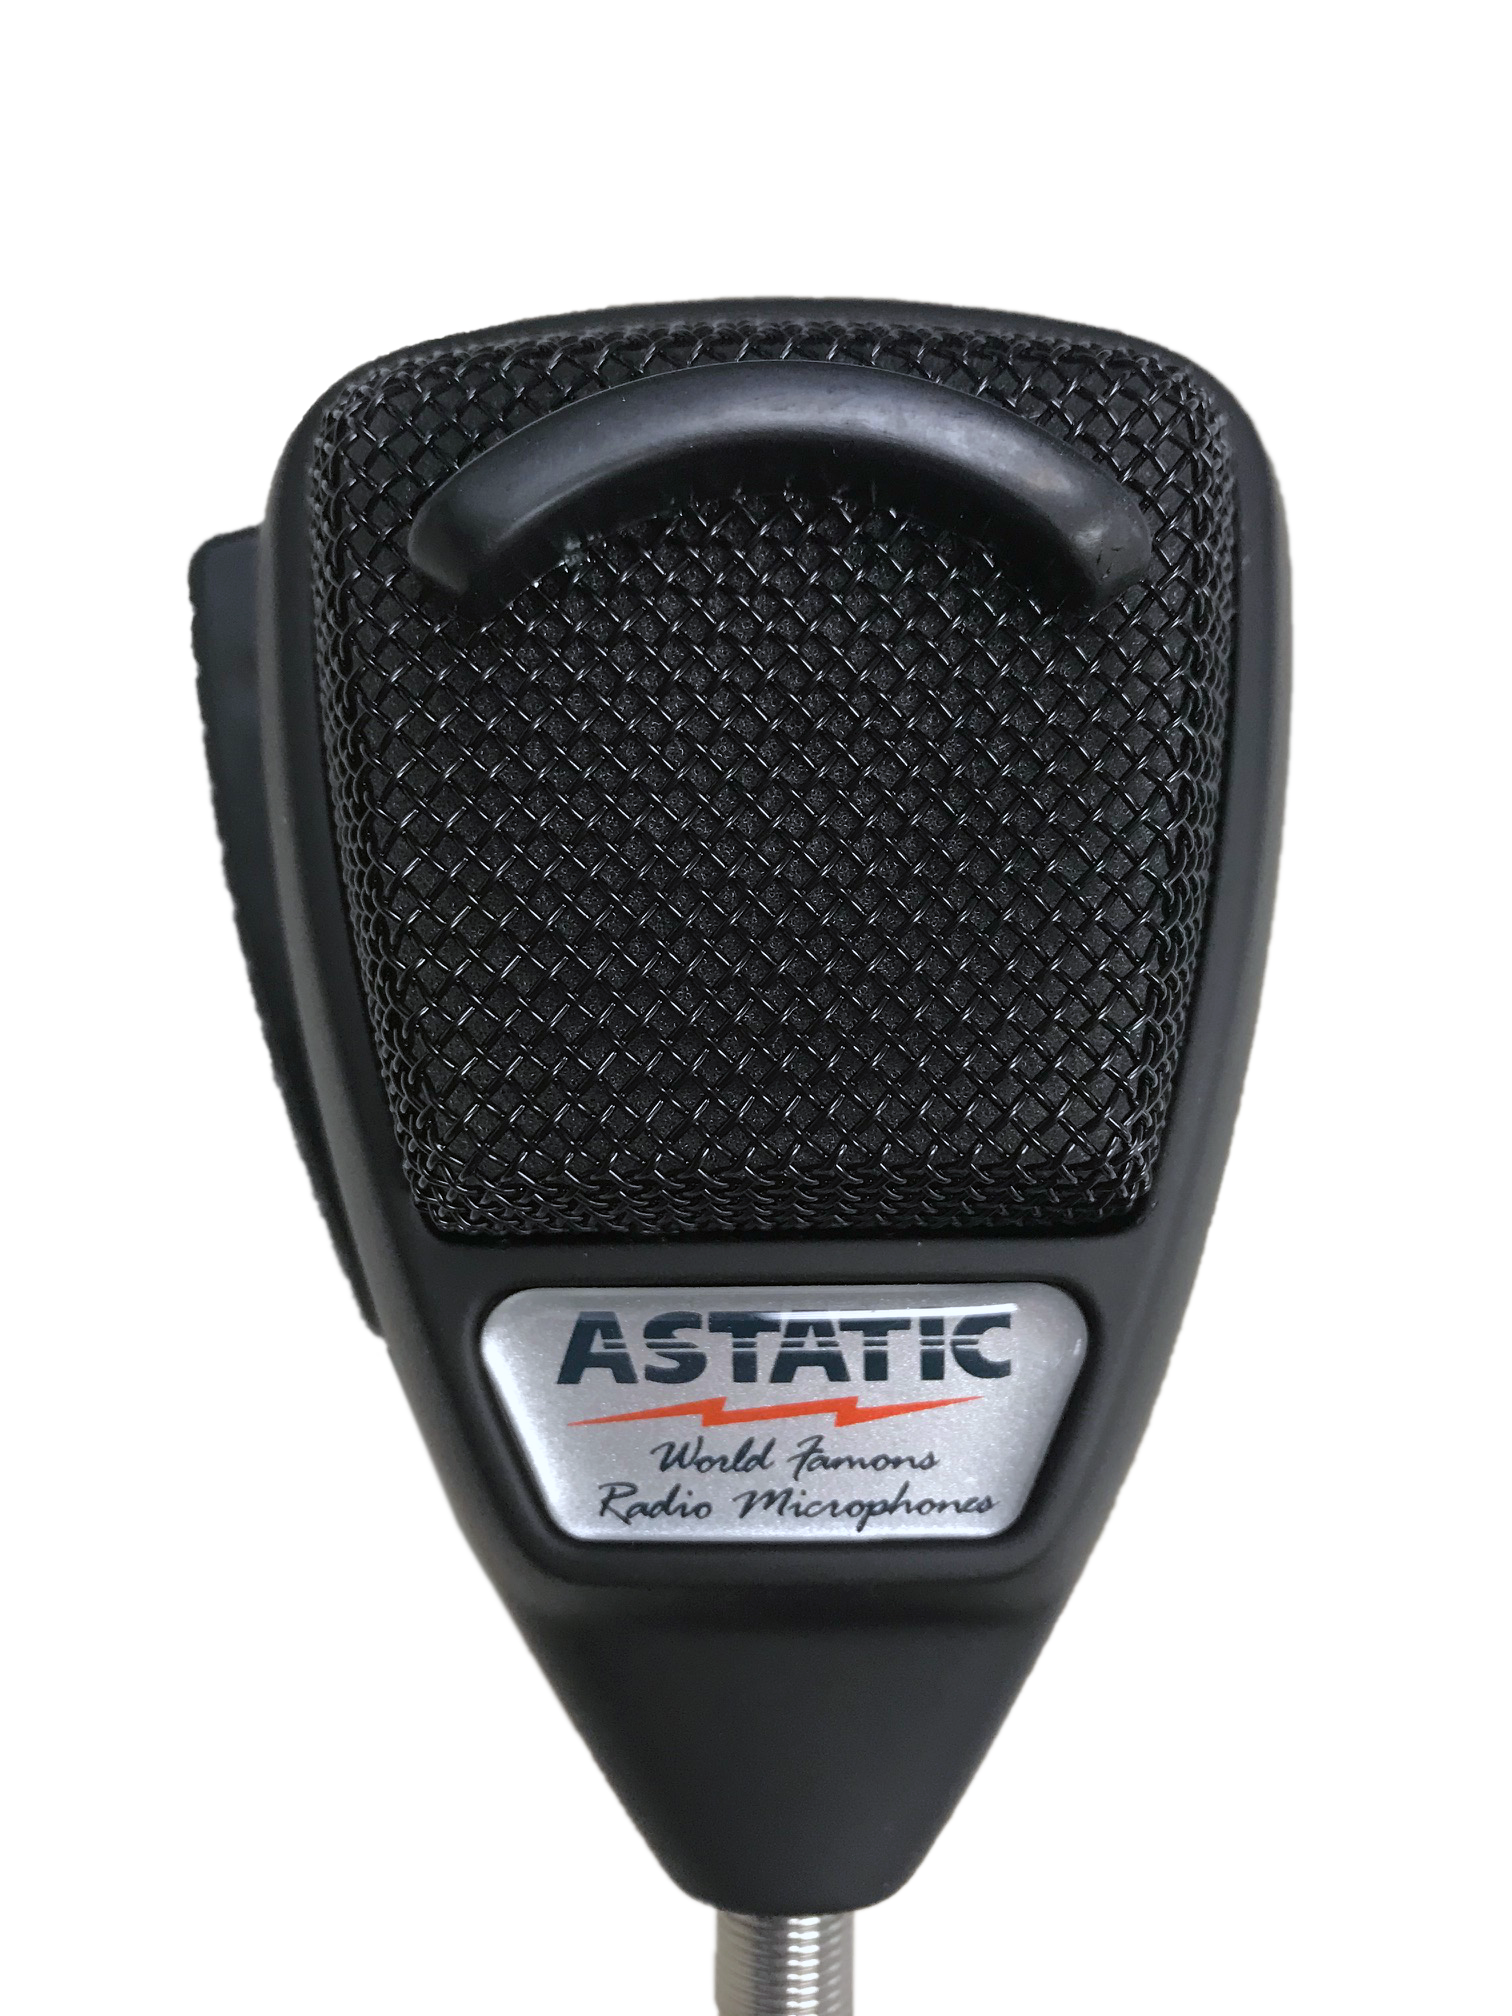 636LRB1 - Astatic 4 Pin Noise Canceling Microphone W/ Rubberized Finish